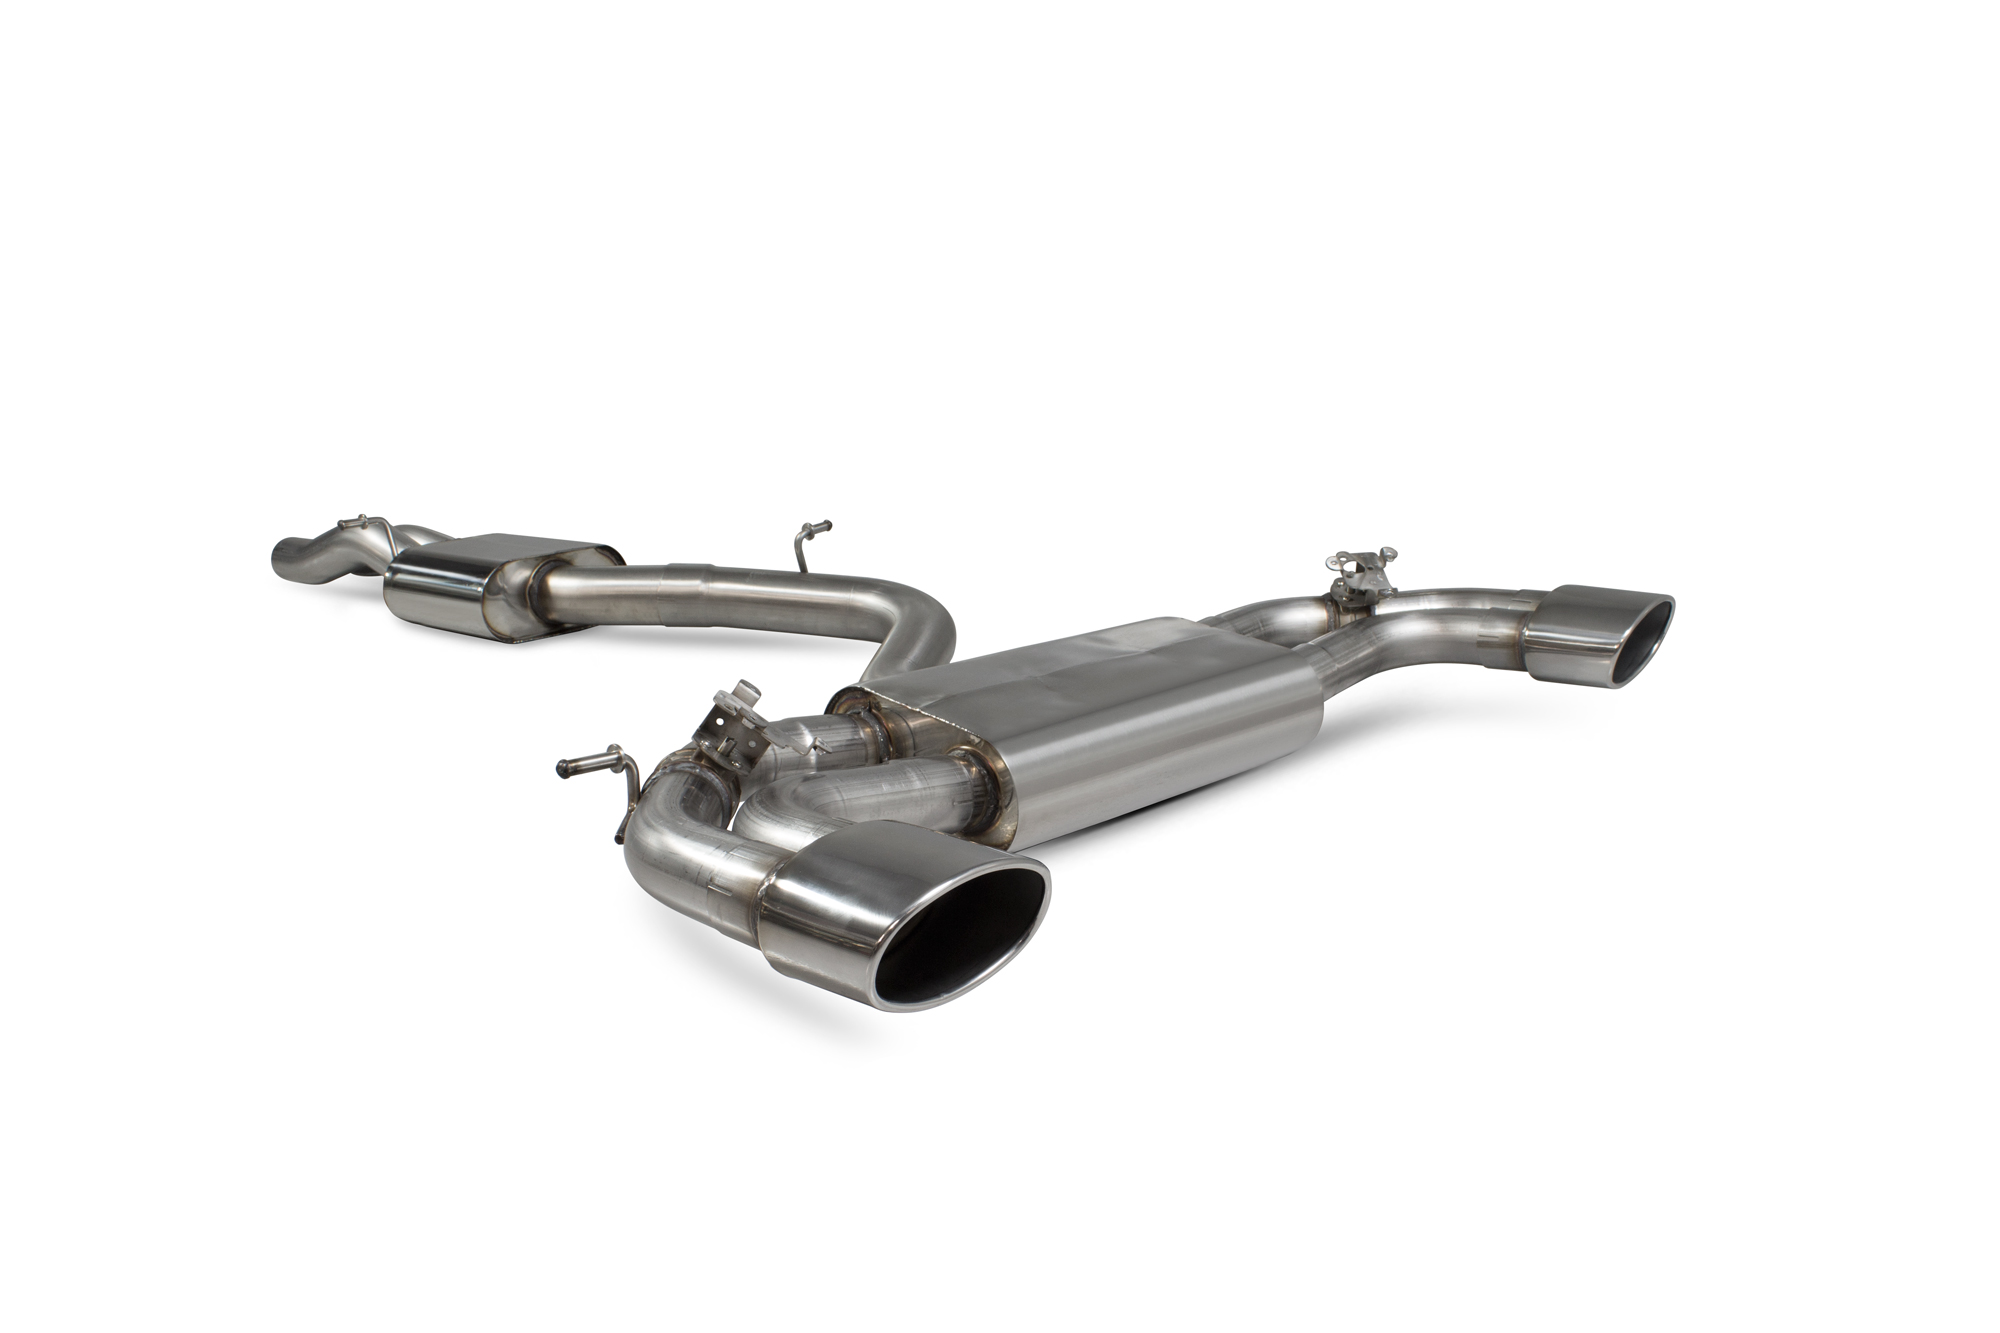 Scorpion Resonated cat-back system with electronic valves Audi RS3 8V Facelift GPF and non GPF models) SAU079